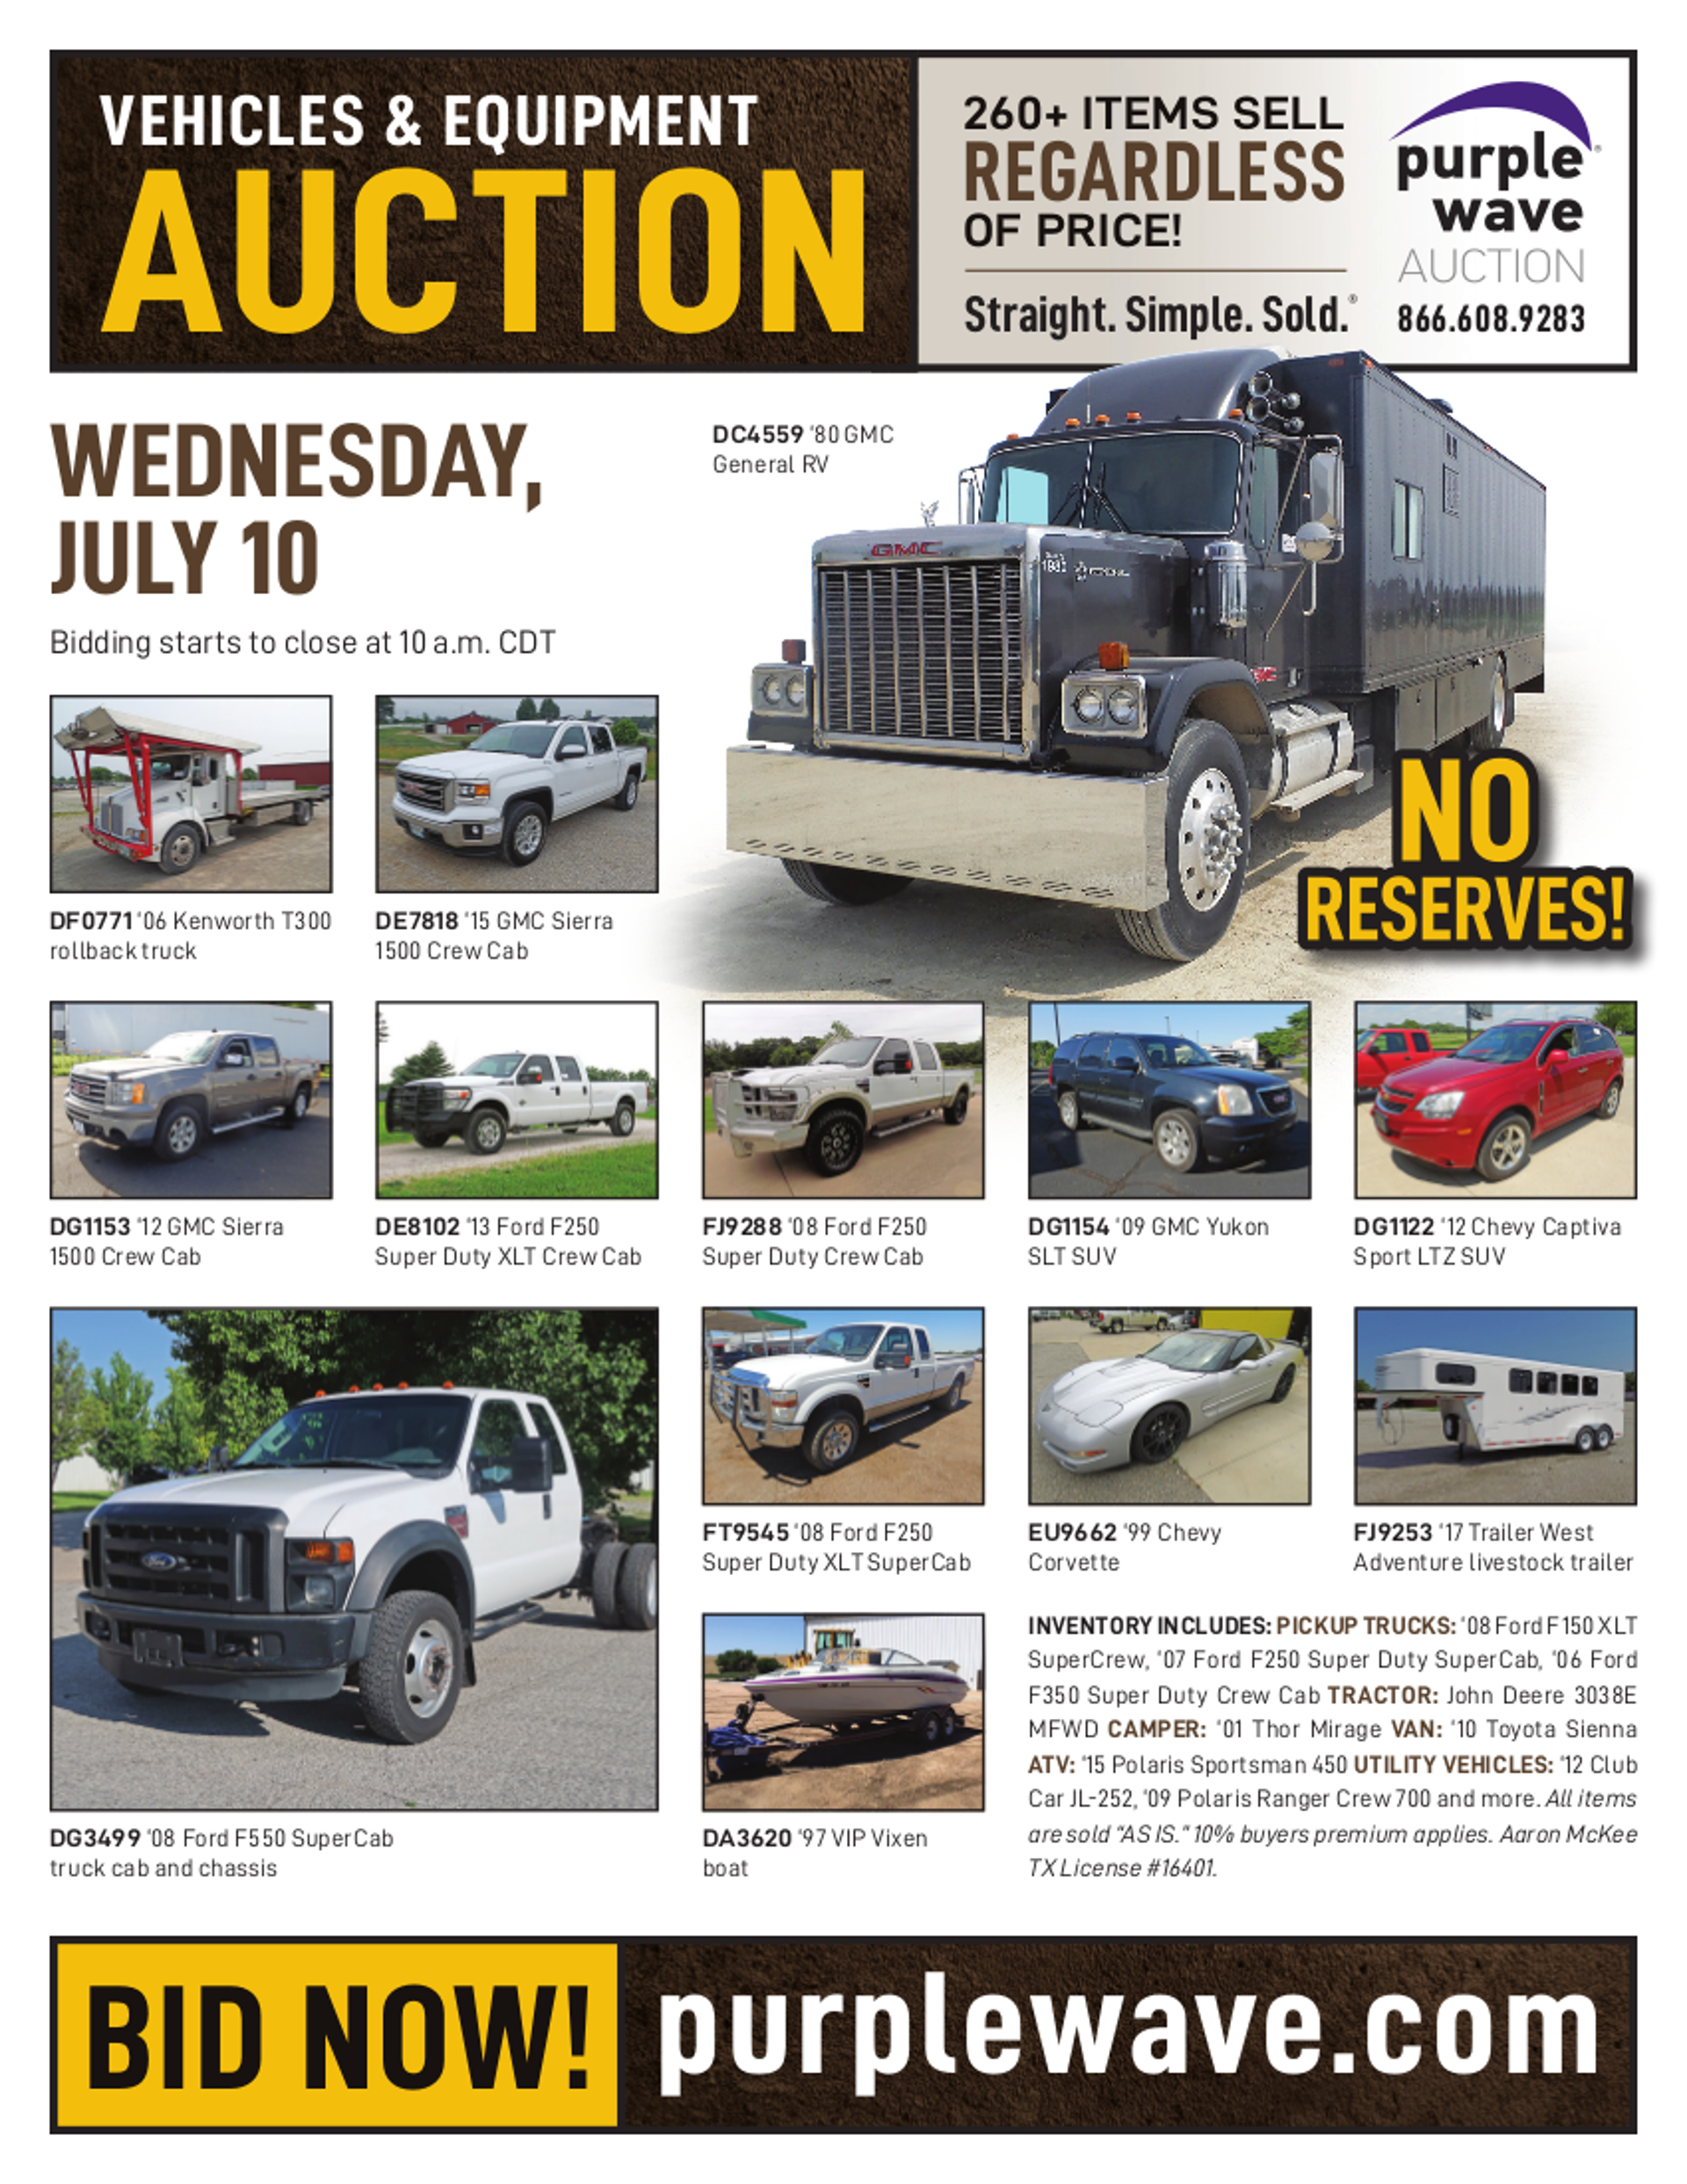 SOLD! July 10 Vehicles and Equipment Auction | PurpleWave, Inc. on